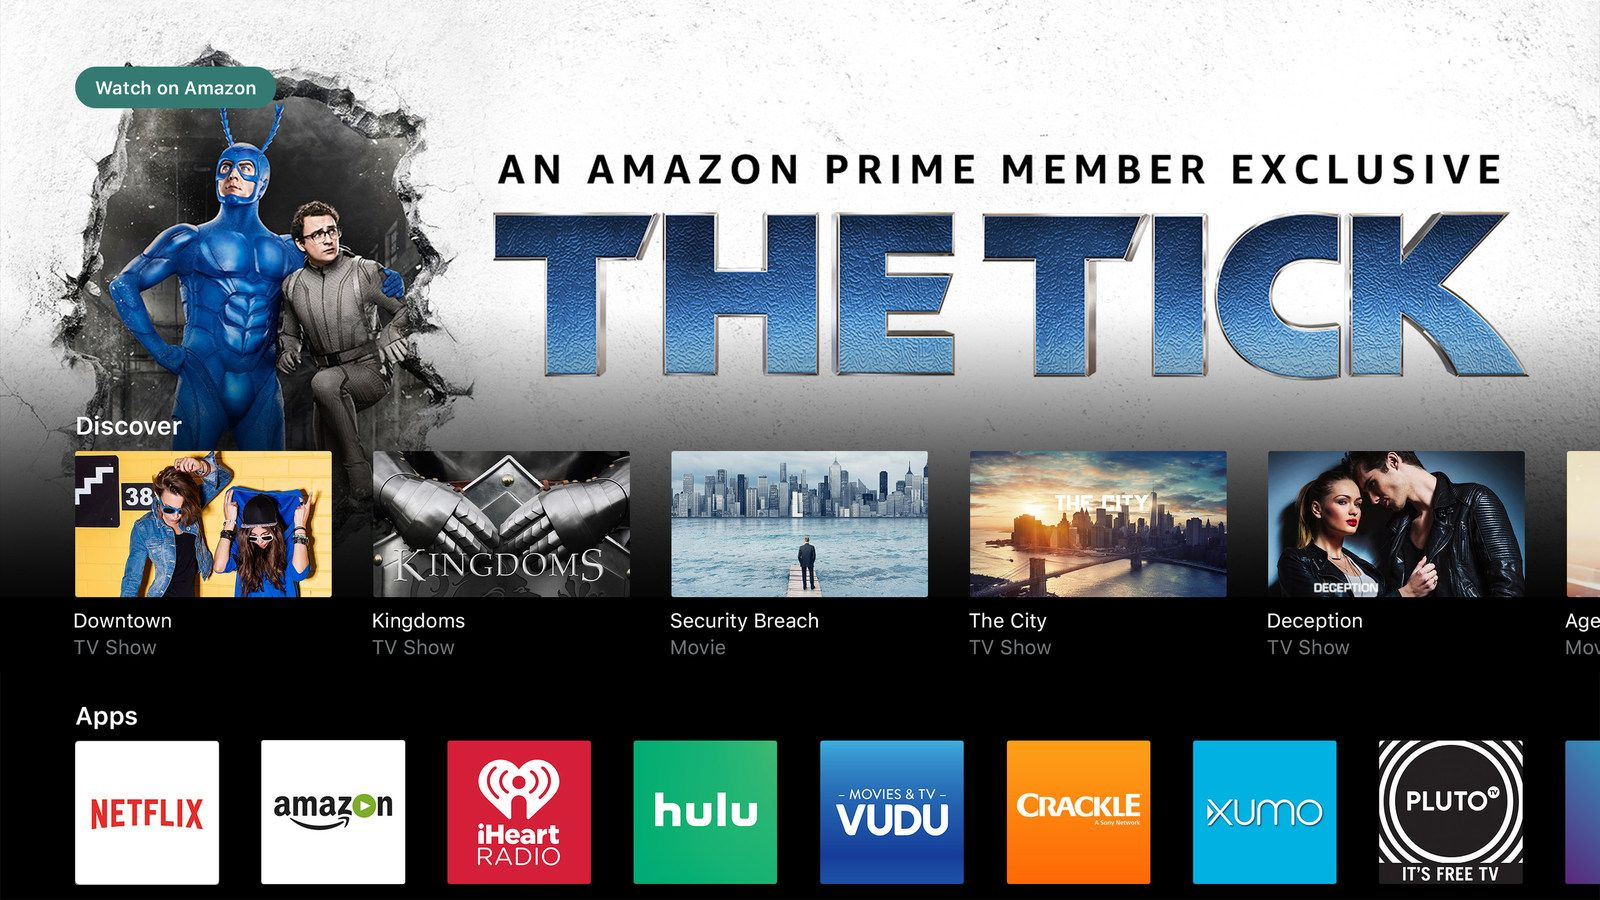 Vizio adds Amazon Video to its list of SmartCast TV apps